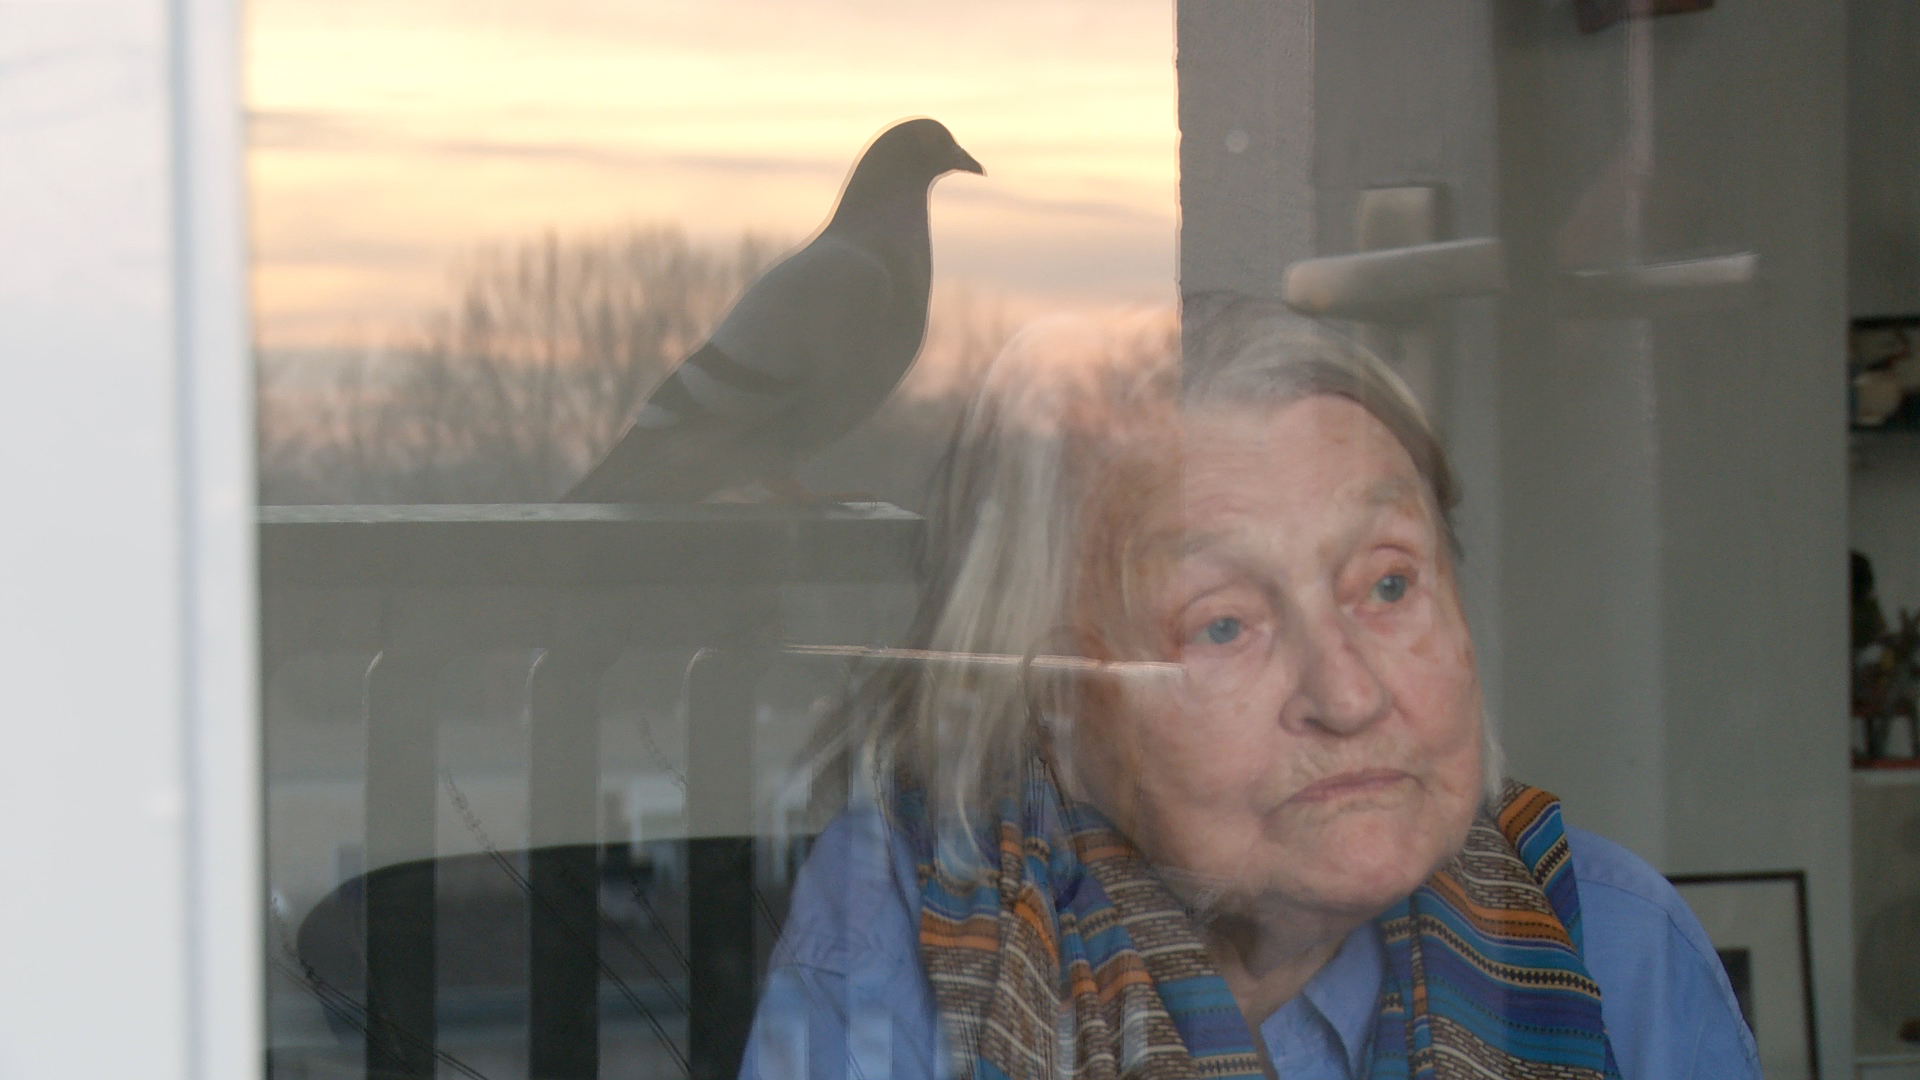 Still from the film Een klein beetje nog. Elisabeth is sitting in front of her window. The reflection of a pigeon is seen in the window.